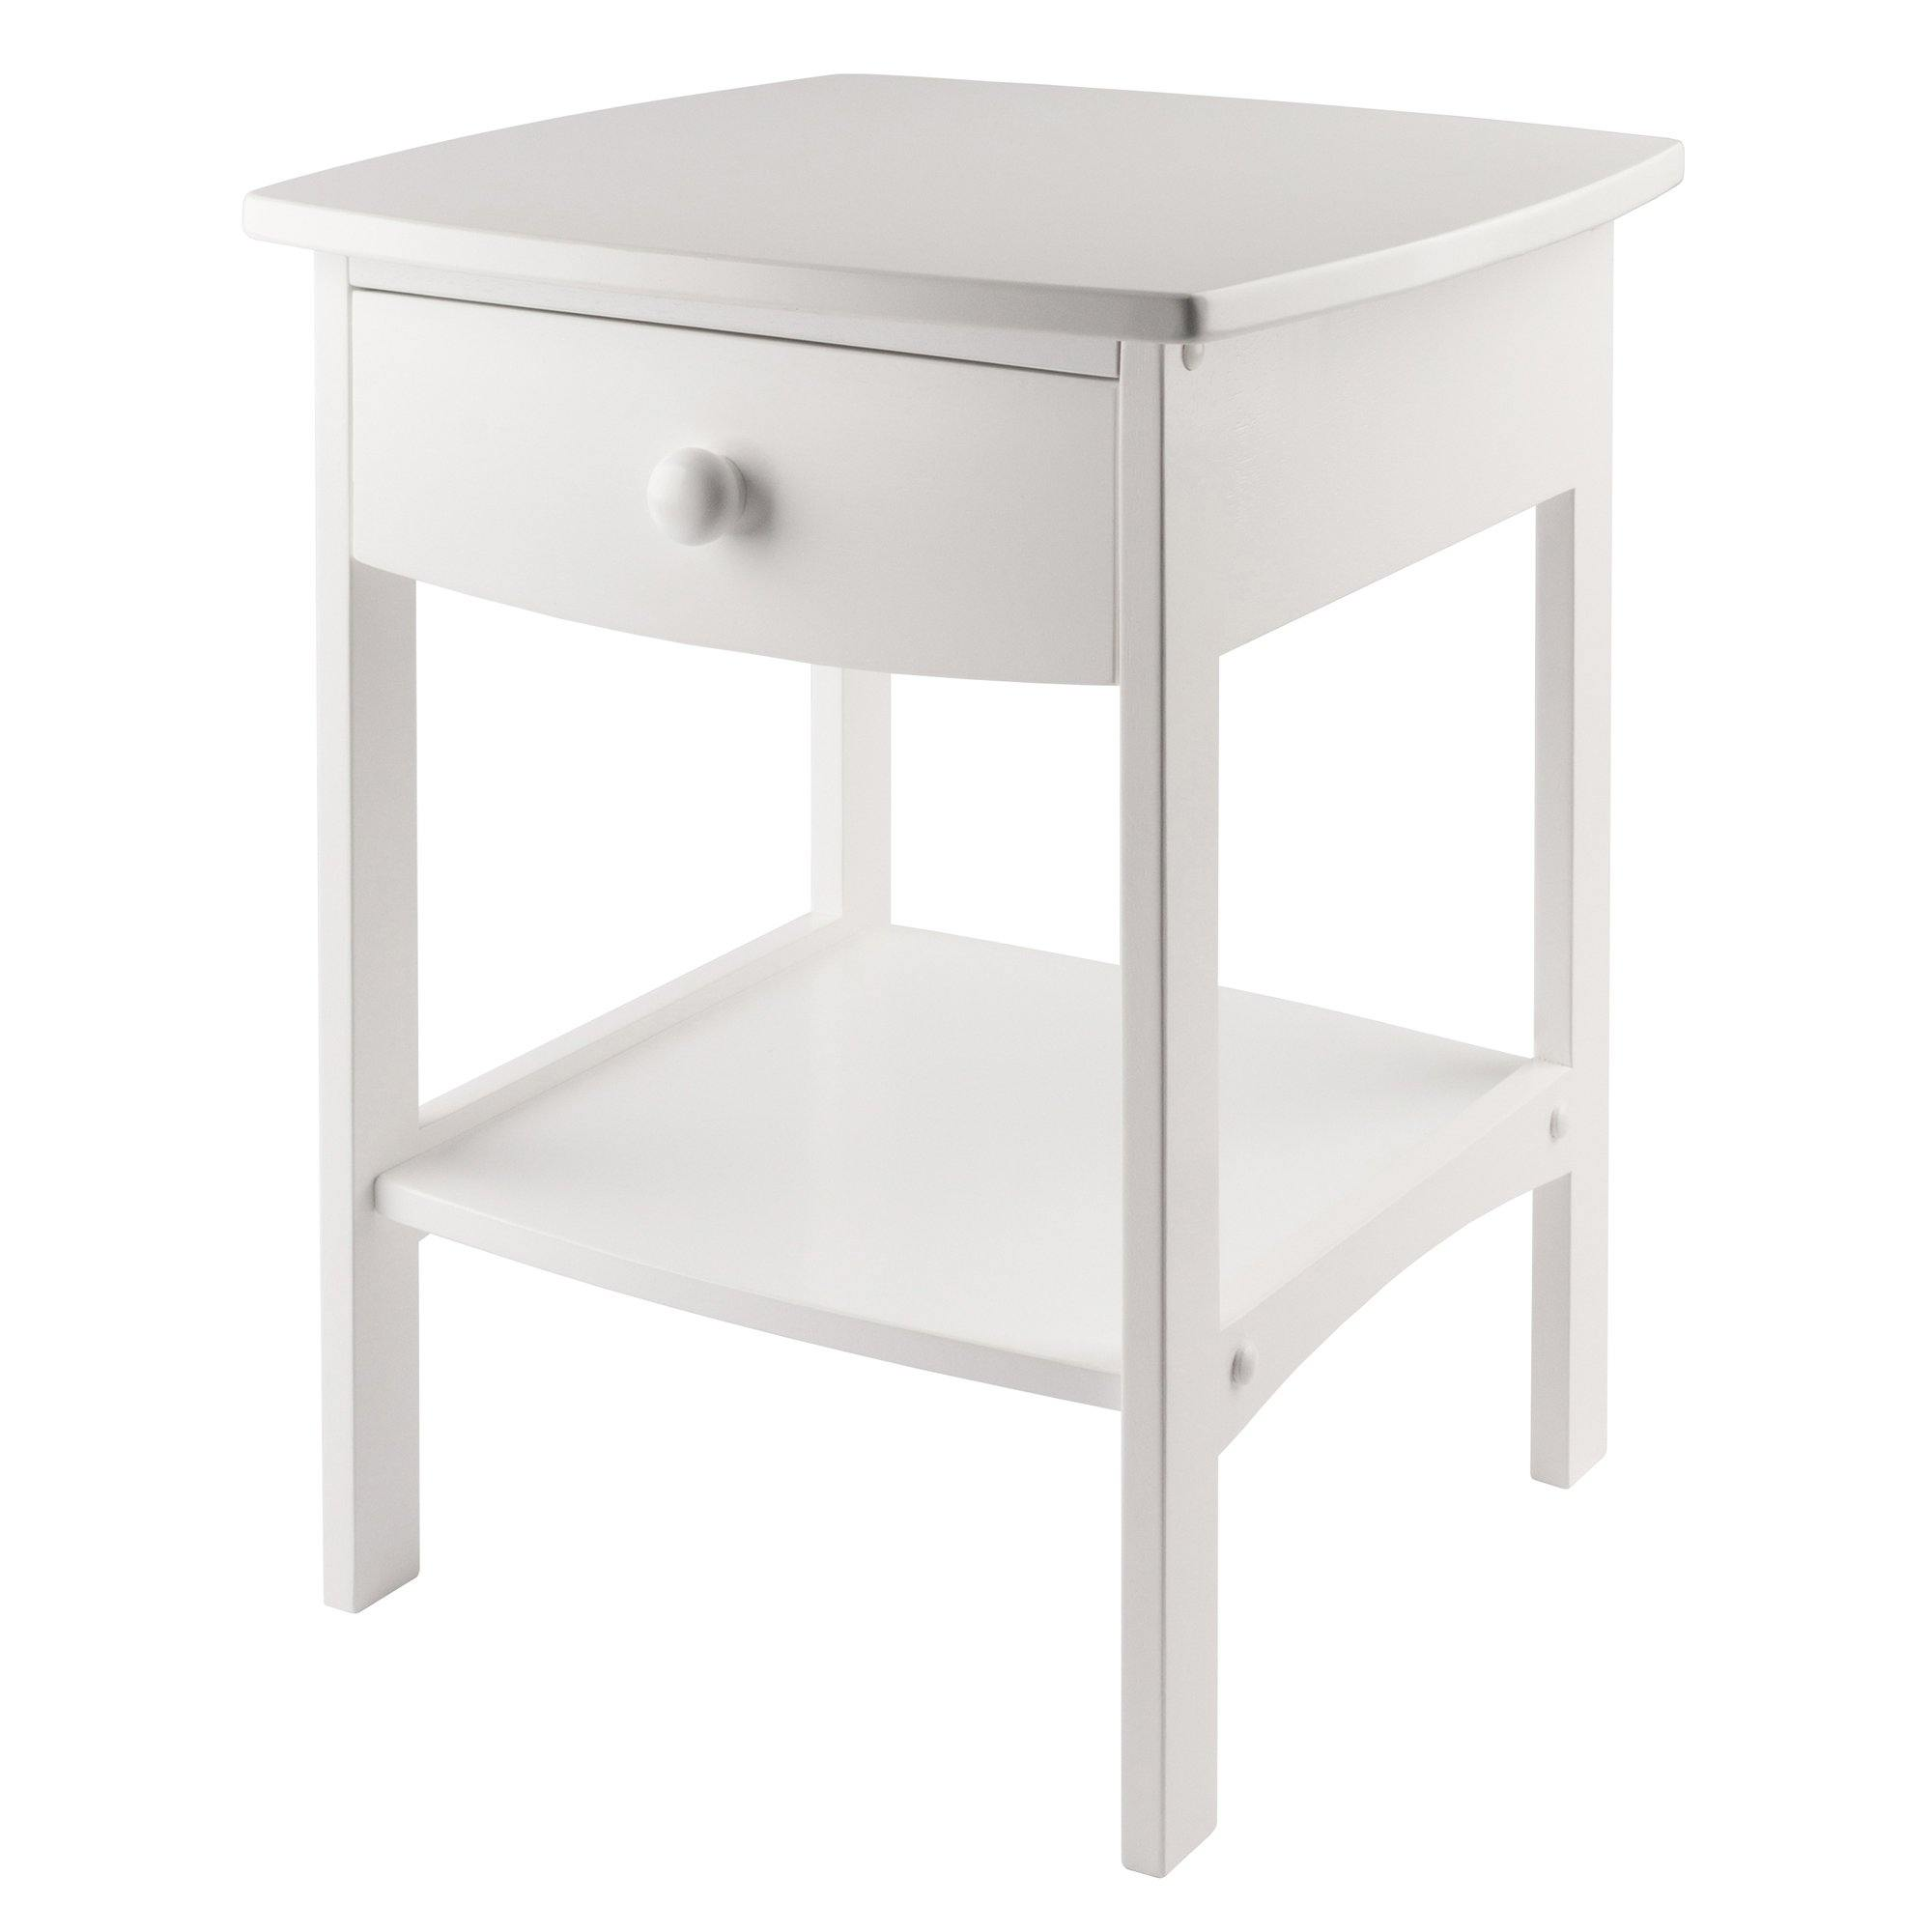 Claire Curved Accent Table, Nightstand, White - My USA Furniture